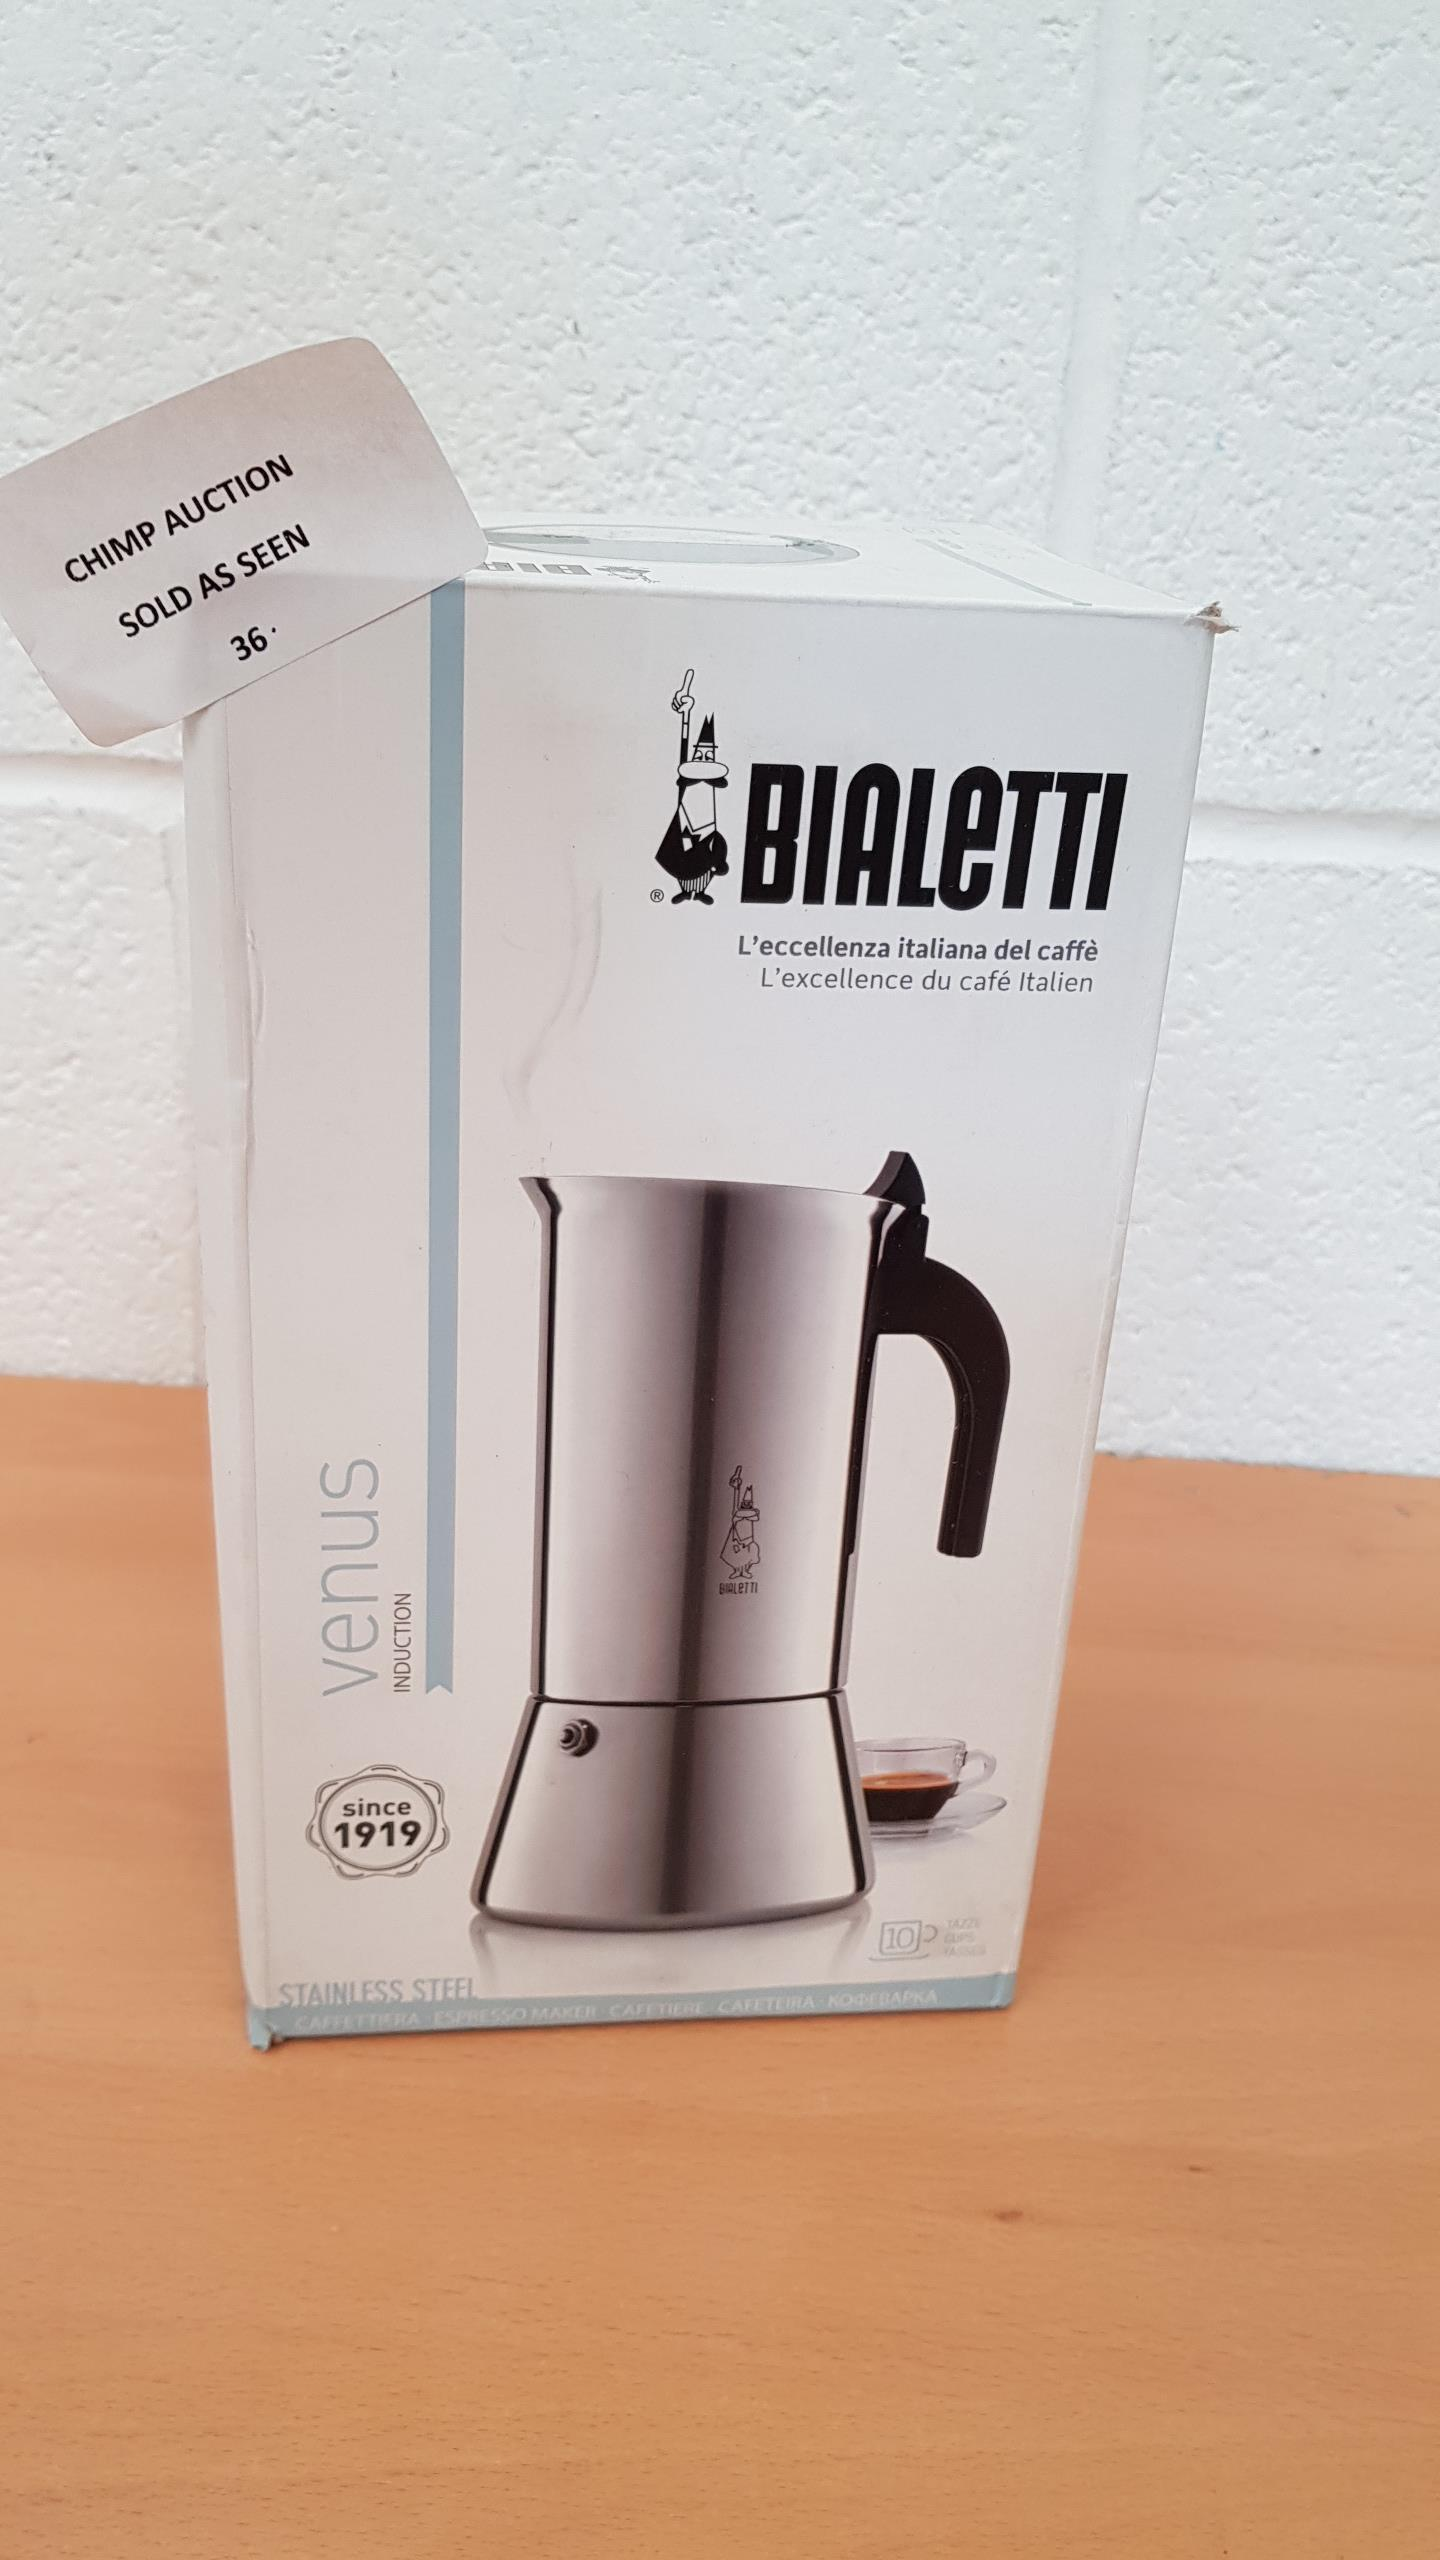 Lot 36 - Bialetti Venus Induction Espresso Maker 10 Cup